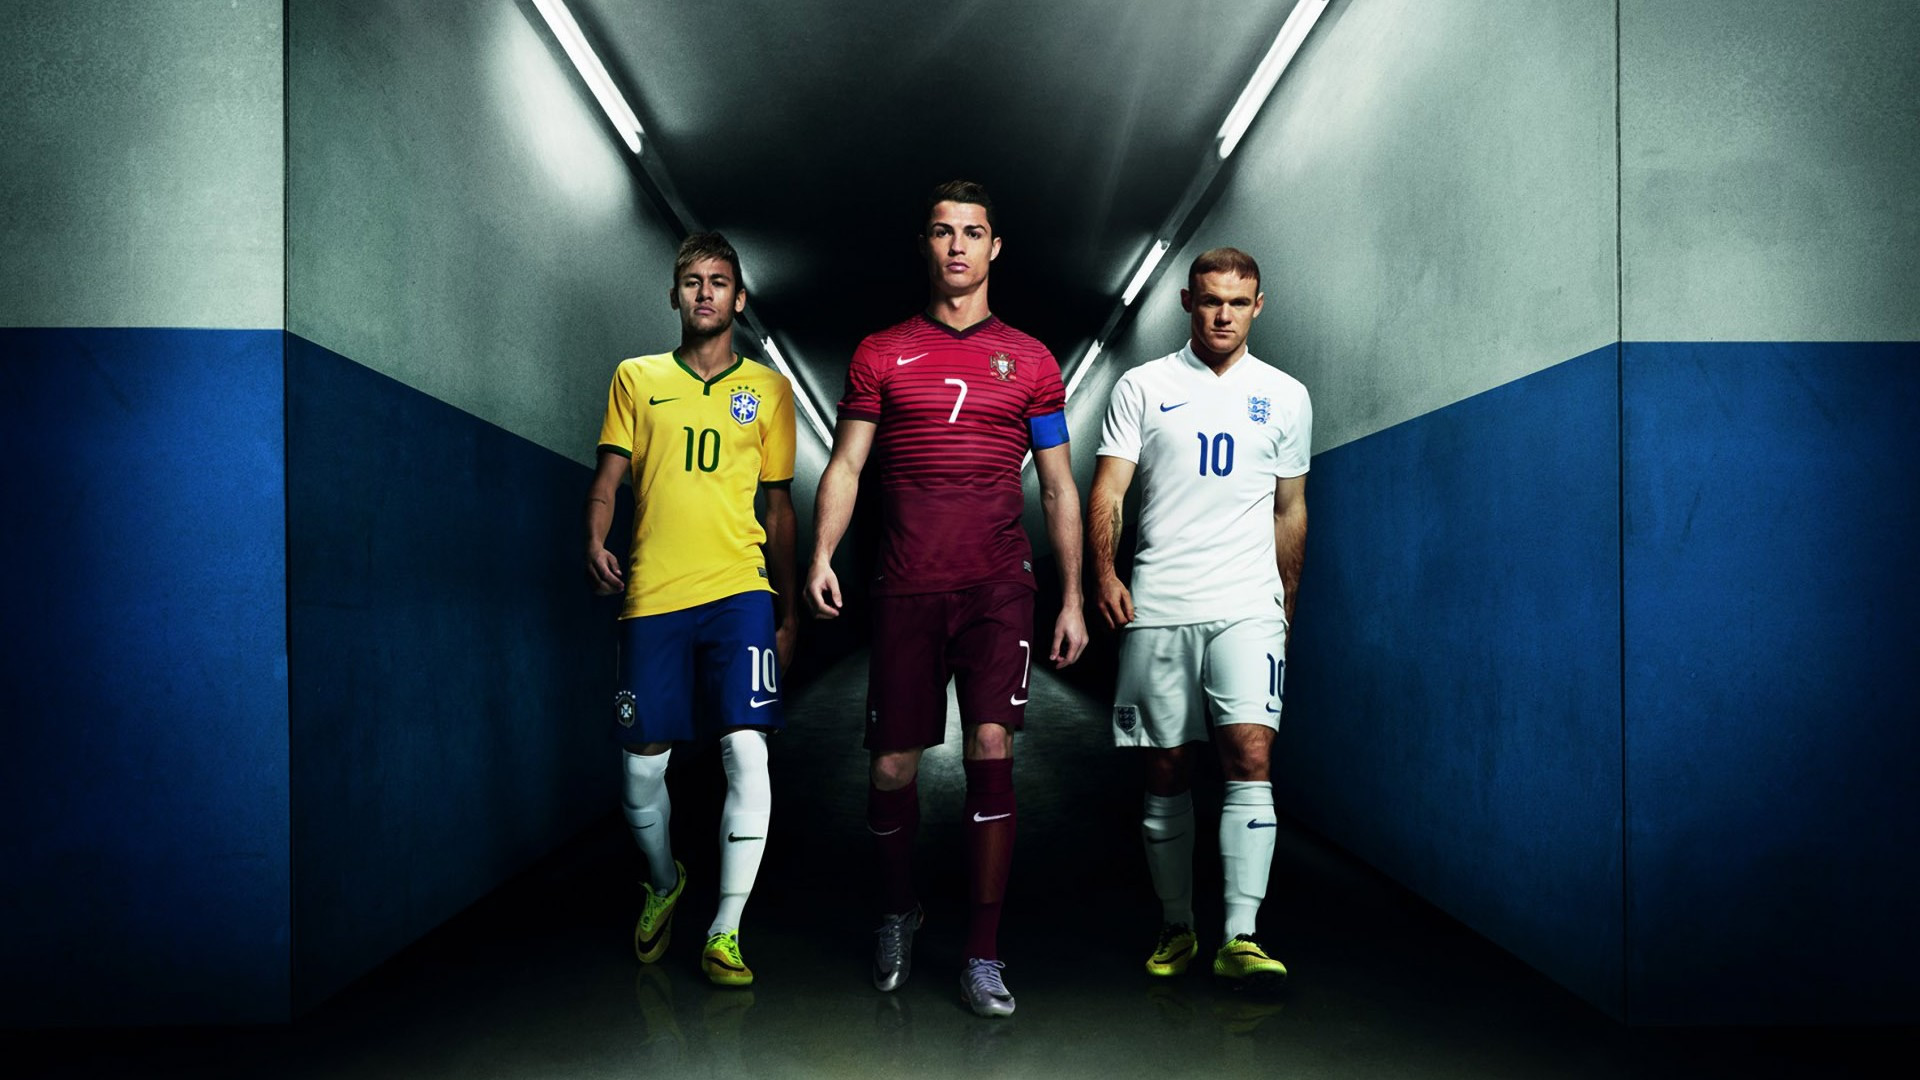 Neymar, Ronaldo, and Rooney - Nike wallpaper